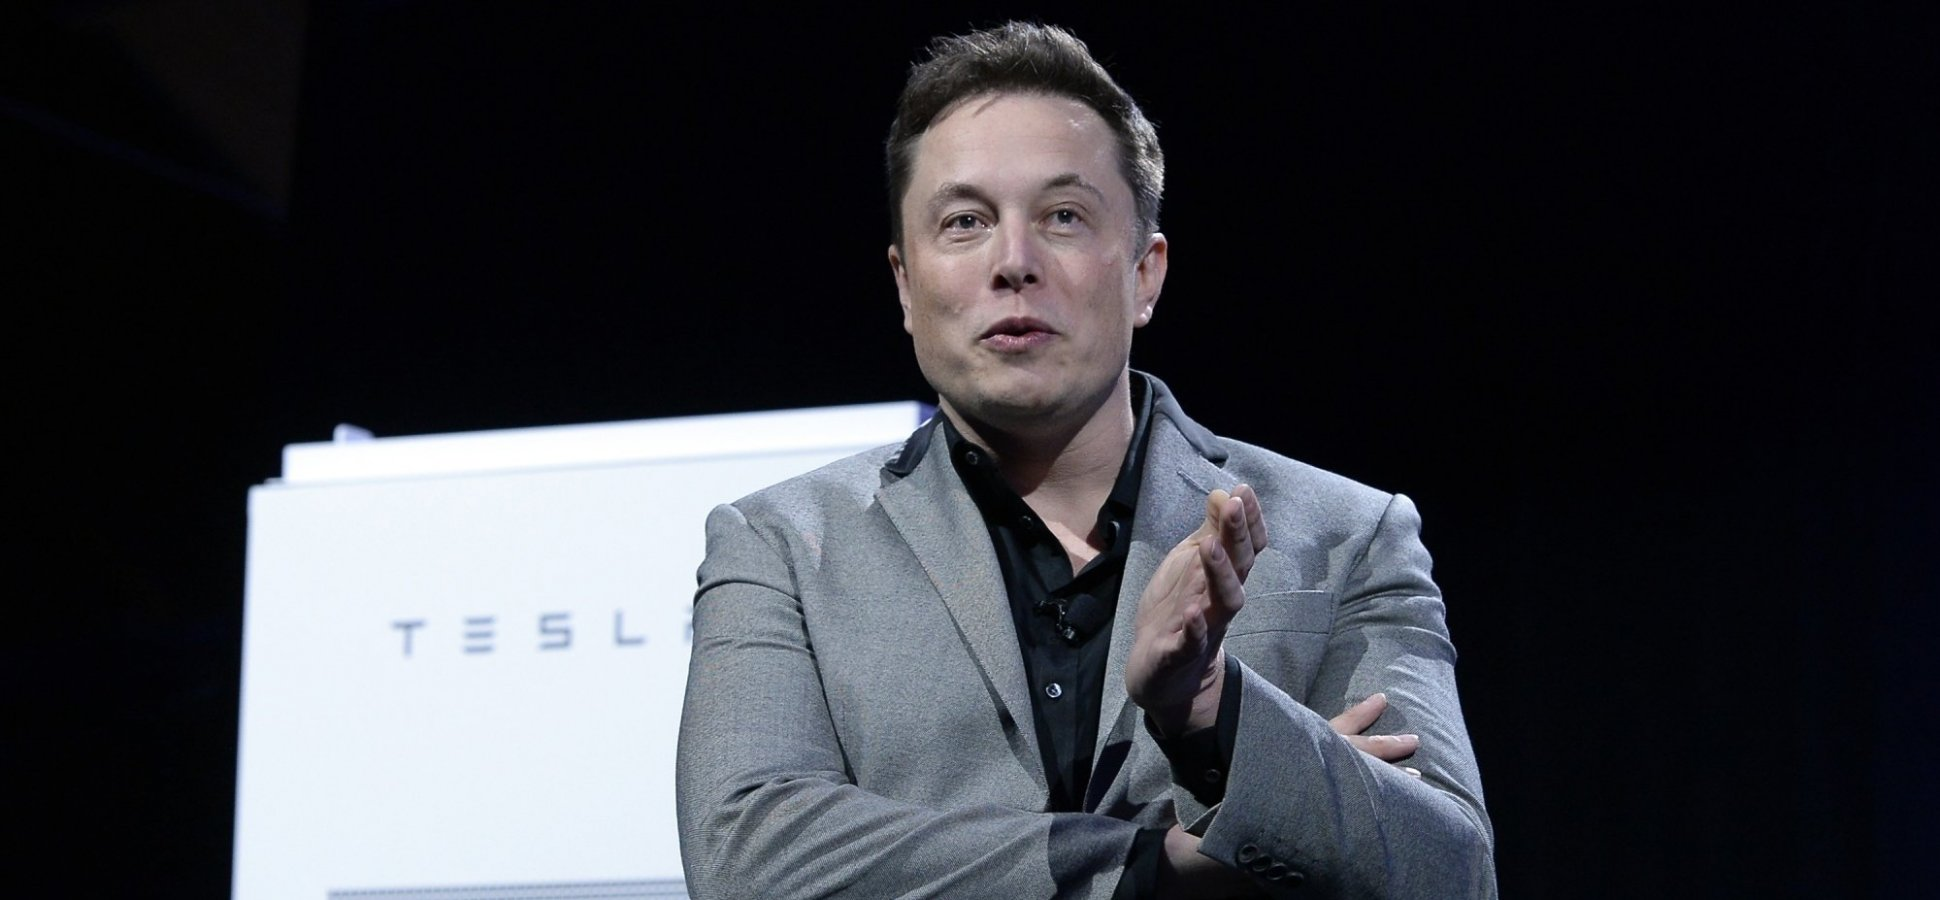 In 6 Words, Elon Musk Explained Why So Many People Are Afraid to Take Risks and Achieve Greatness